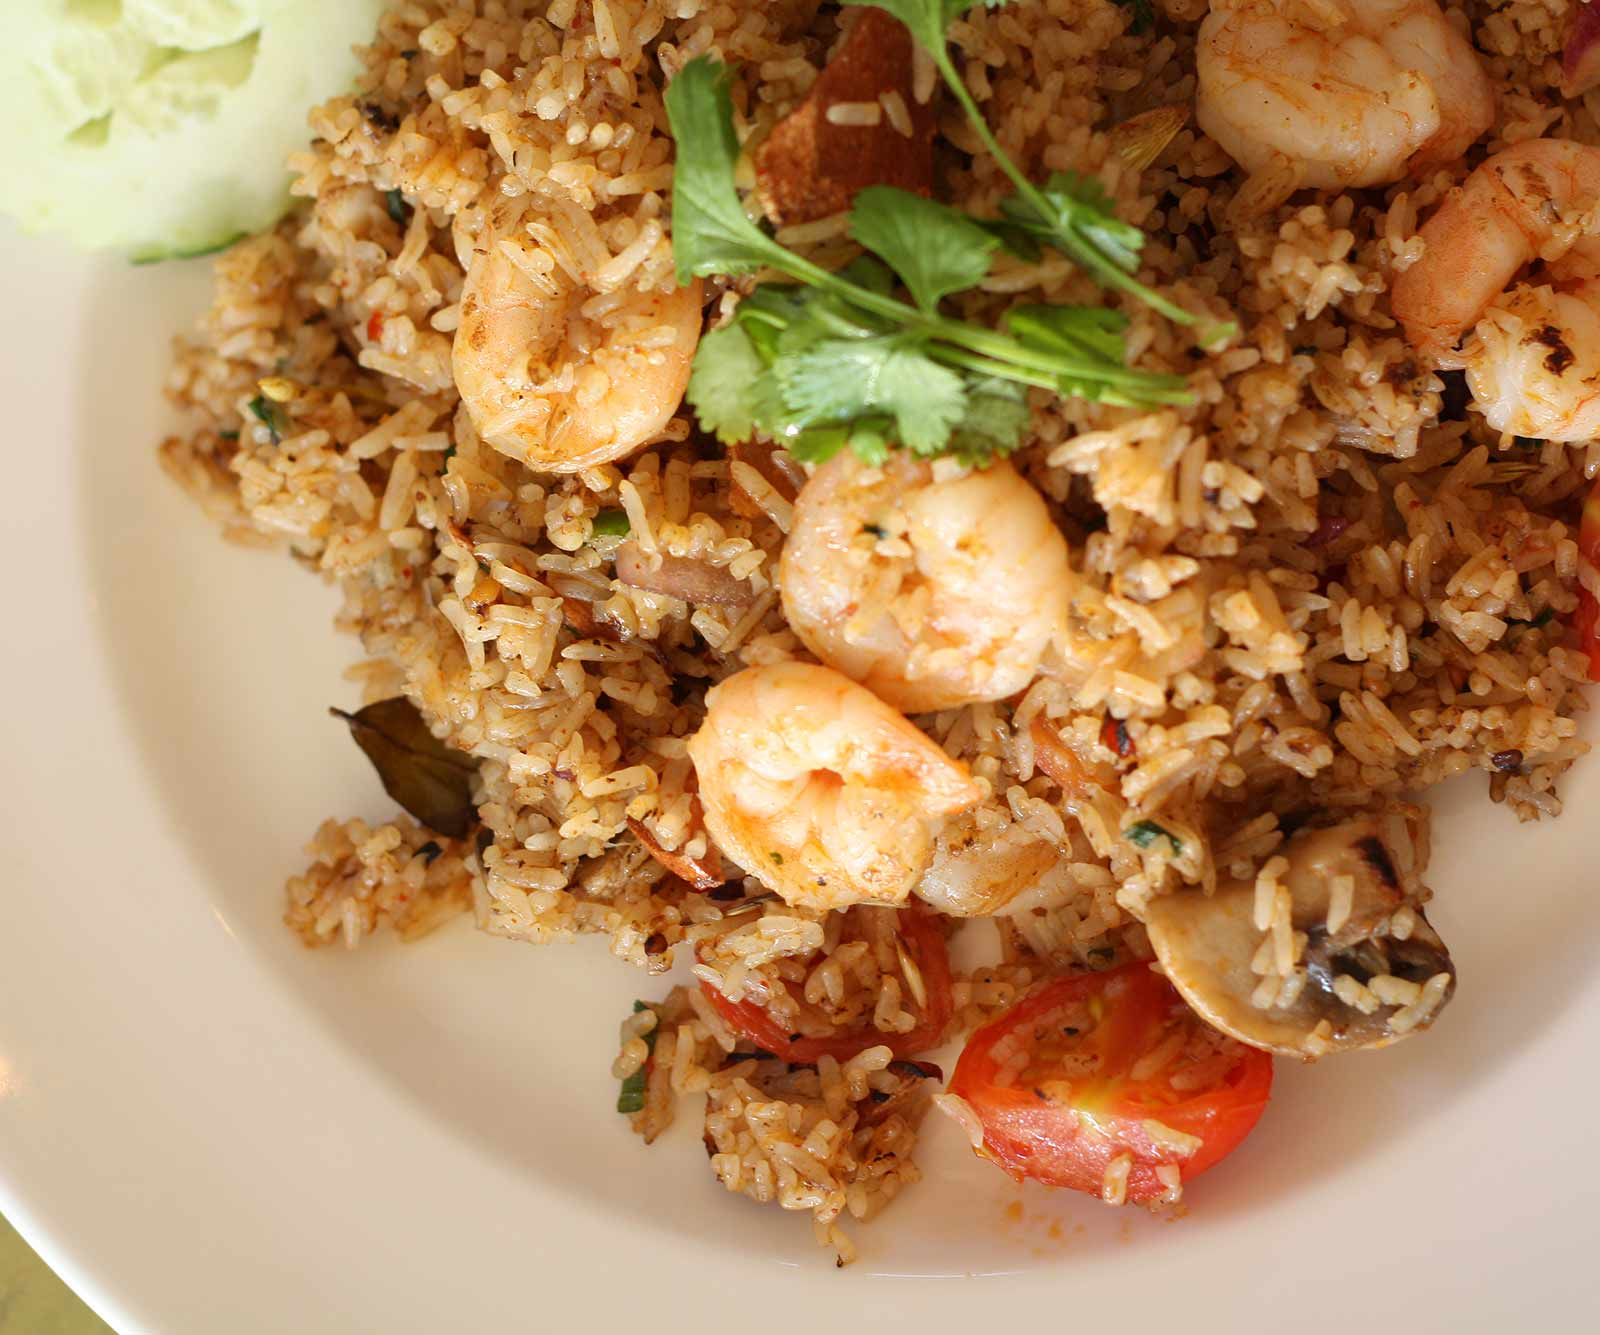 Shrimp Tom Yum Fried rice